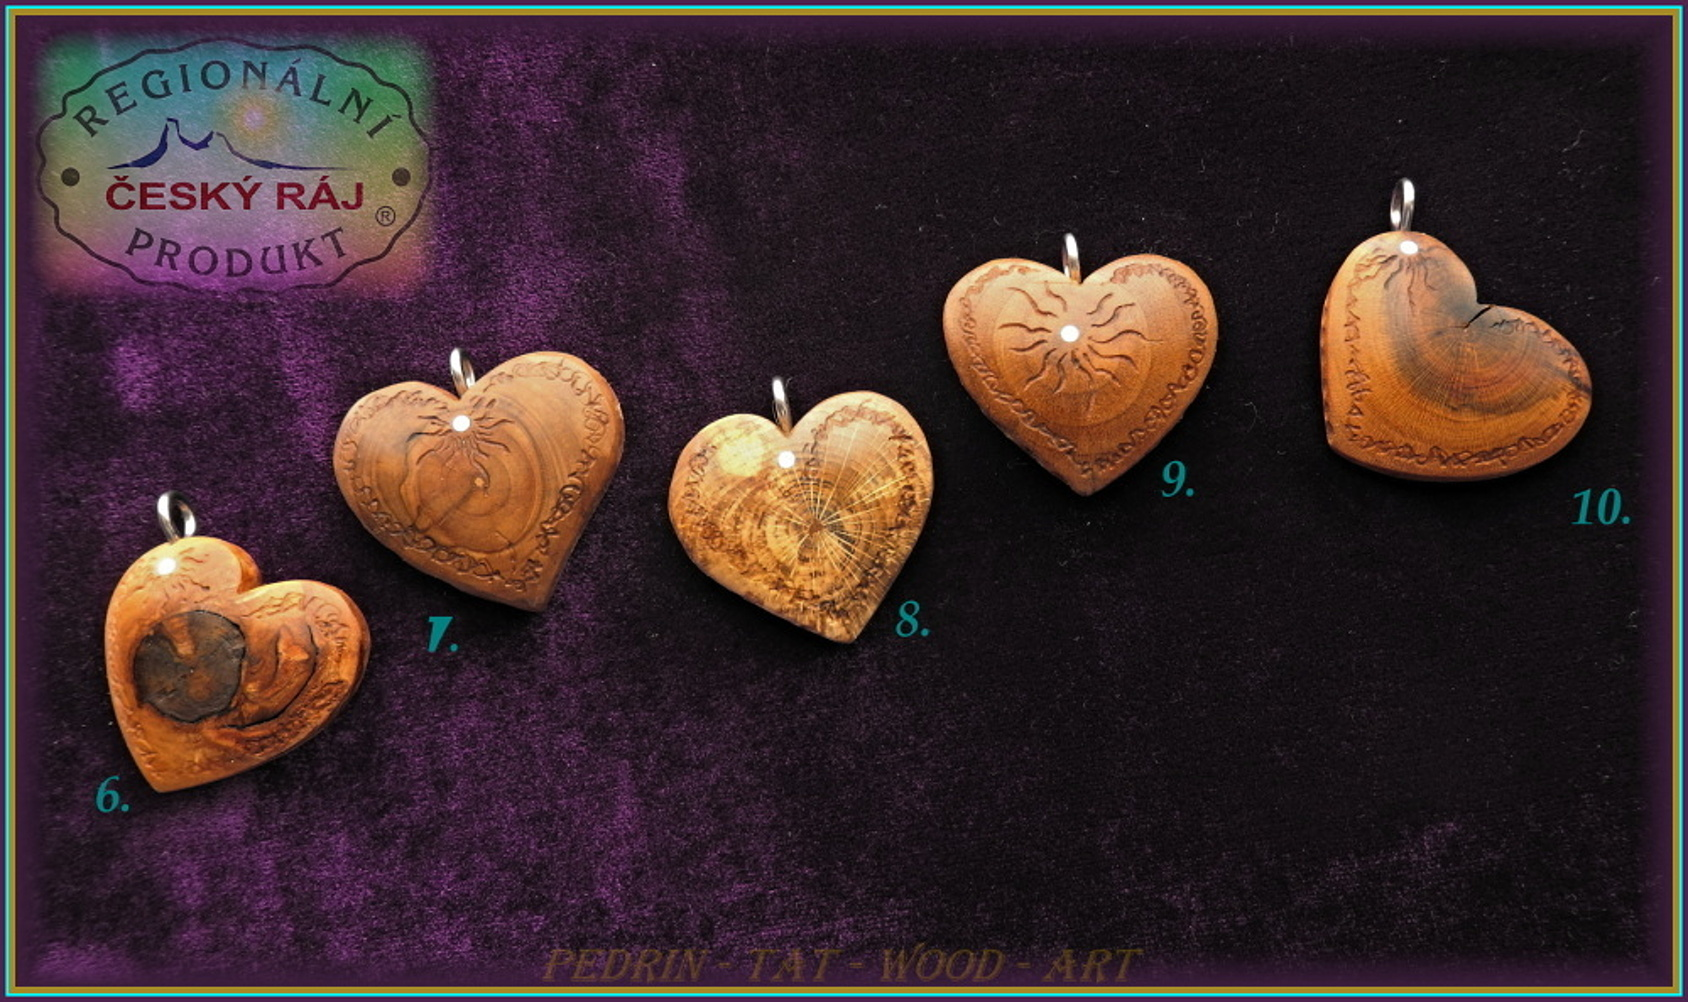 WOODEN HEART - Necklace 6-10 - Adjustable knot fixing